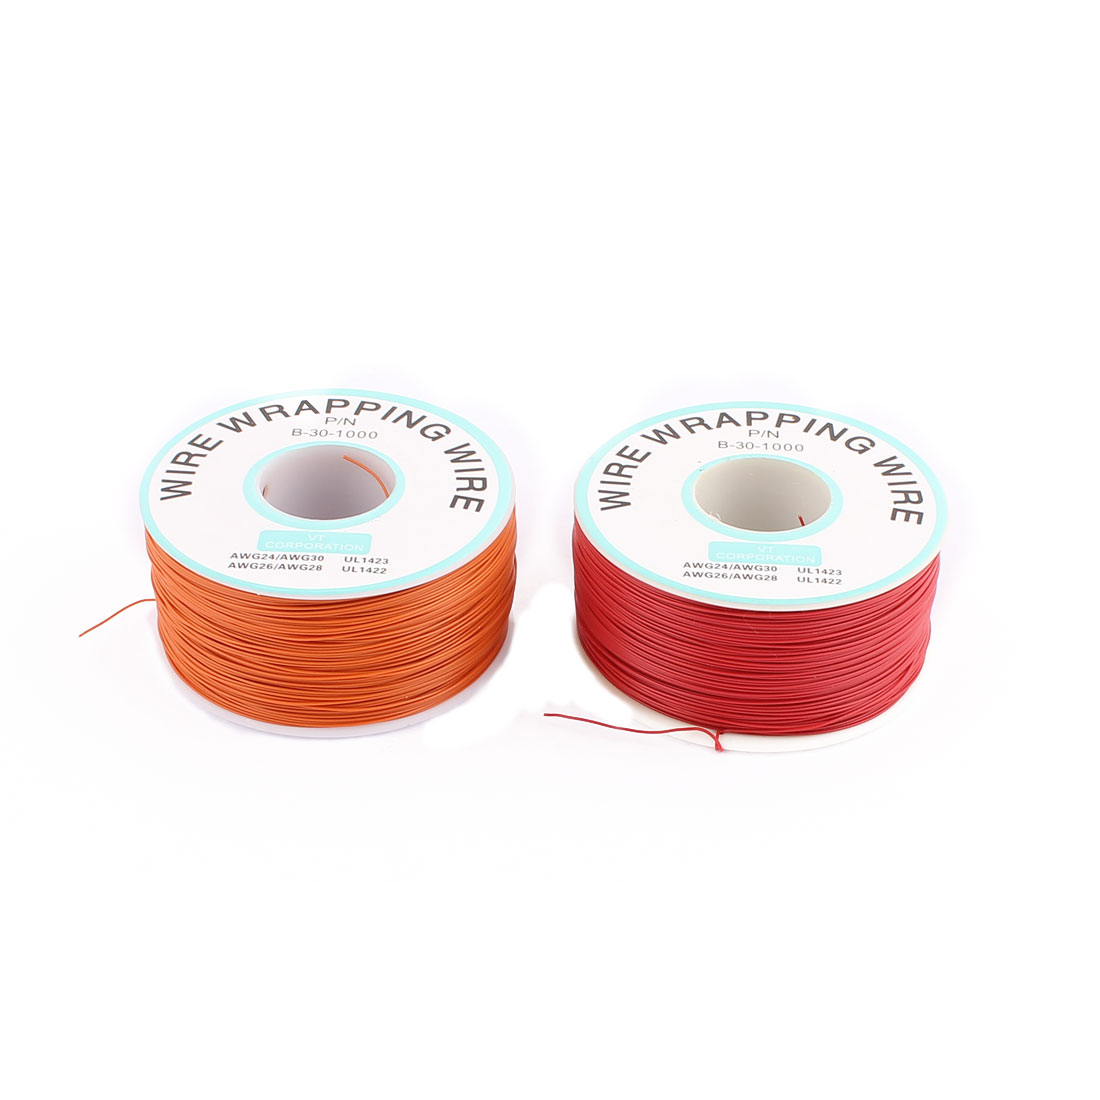 2 Pcs High Temperature Resistant Wraping Wire B-30-1000 Orange and Red